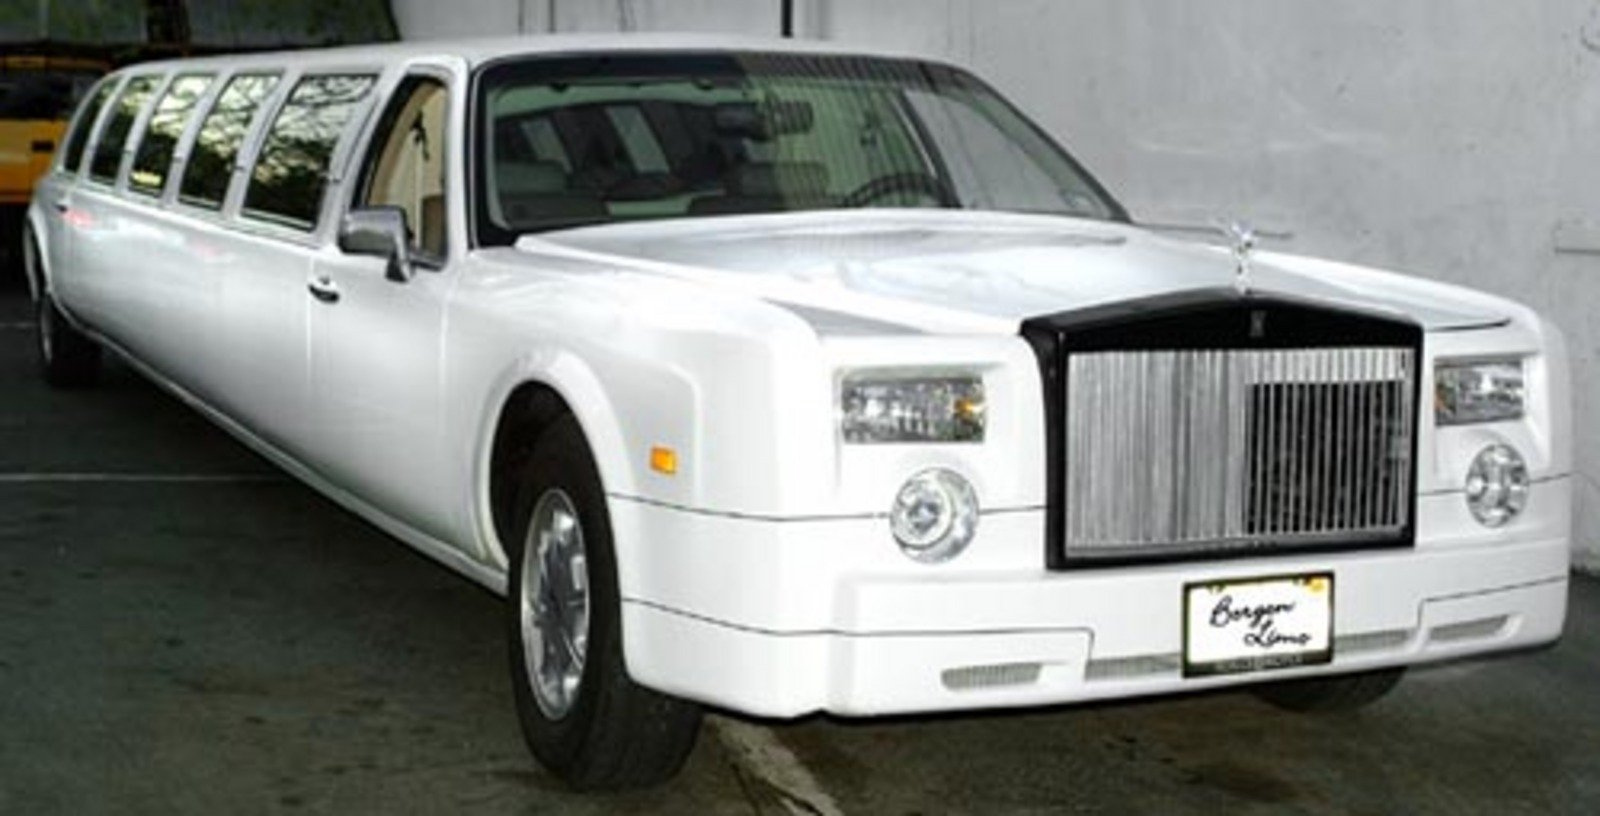 rolls royce phantom limousine news gallery top speed. Black Bedroom Furniture Sets. Home Design Ideas